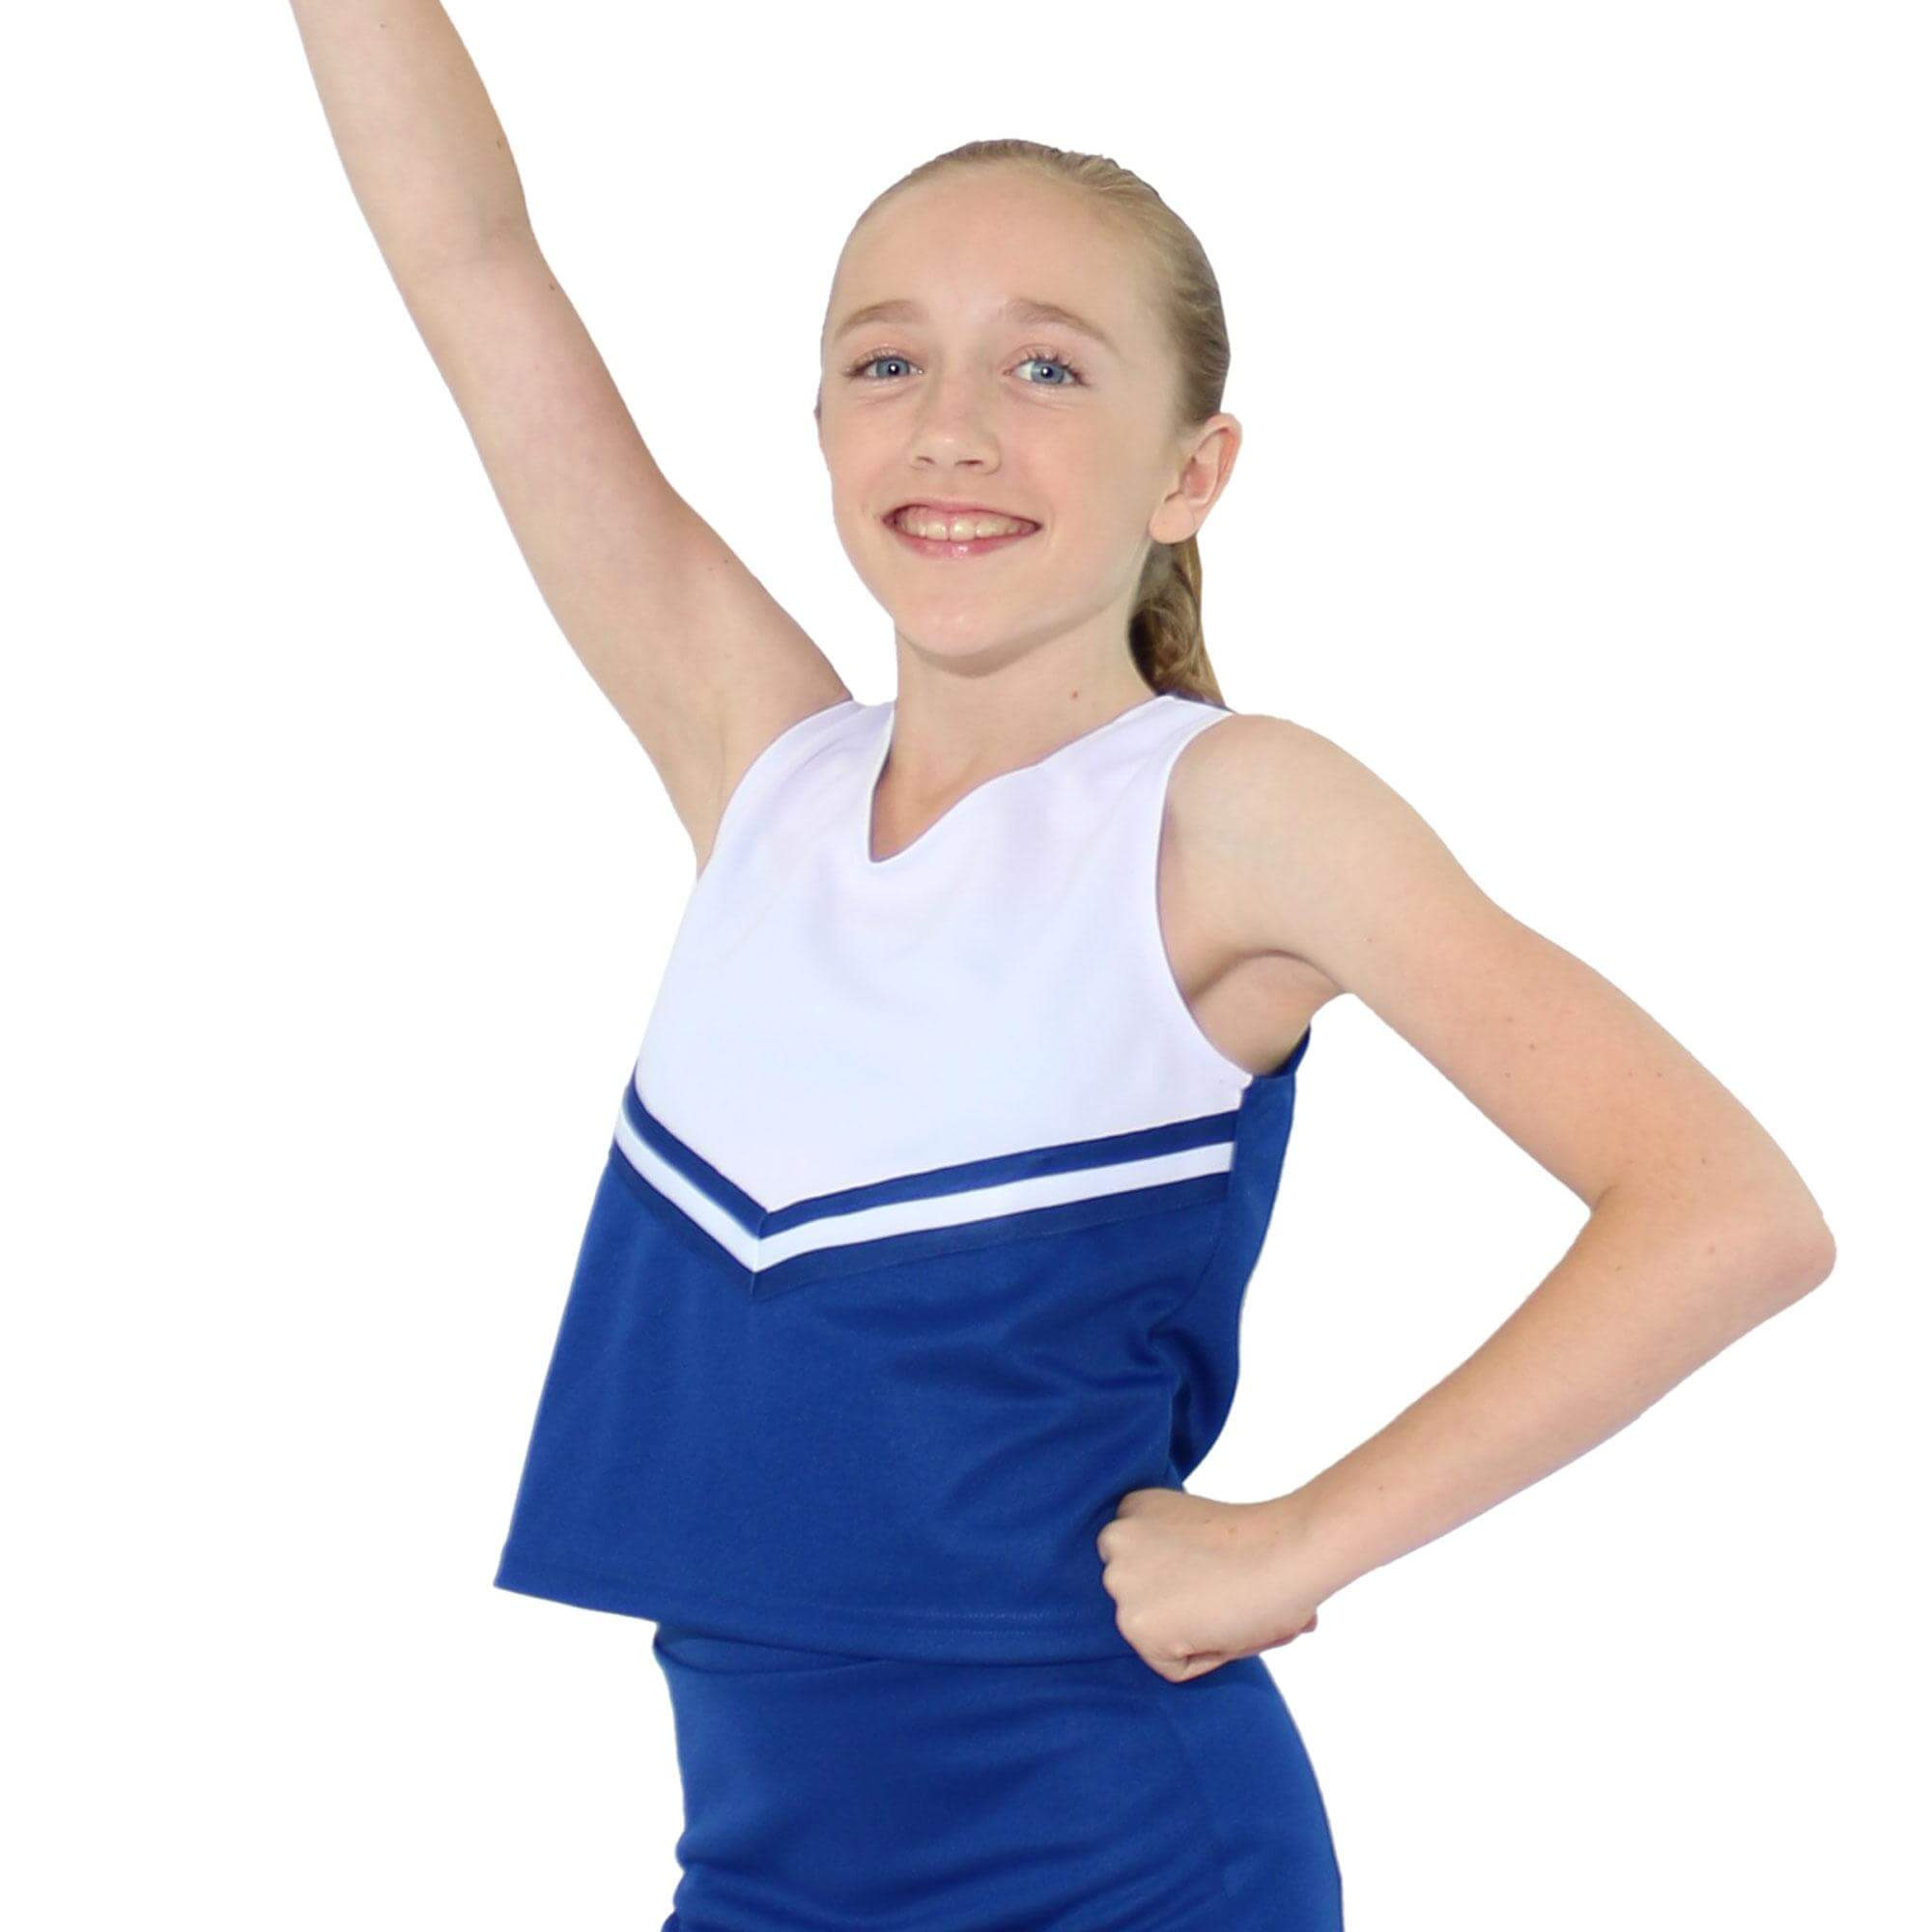 Danzcue Child V-Neck Cheerleaders Uniform Shell Top